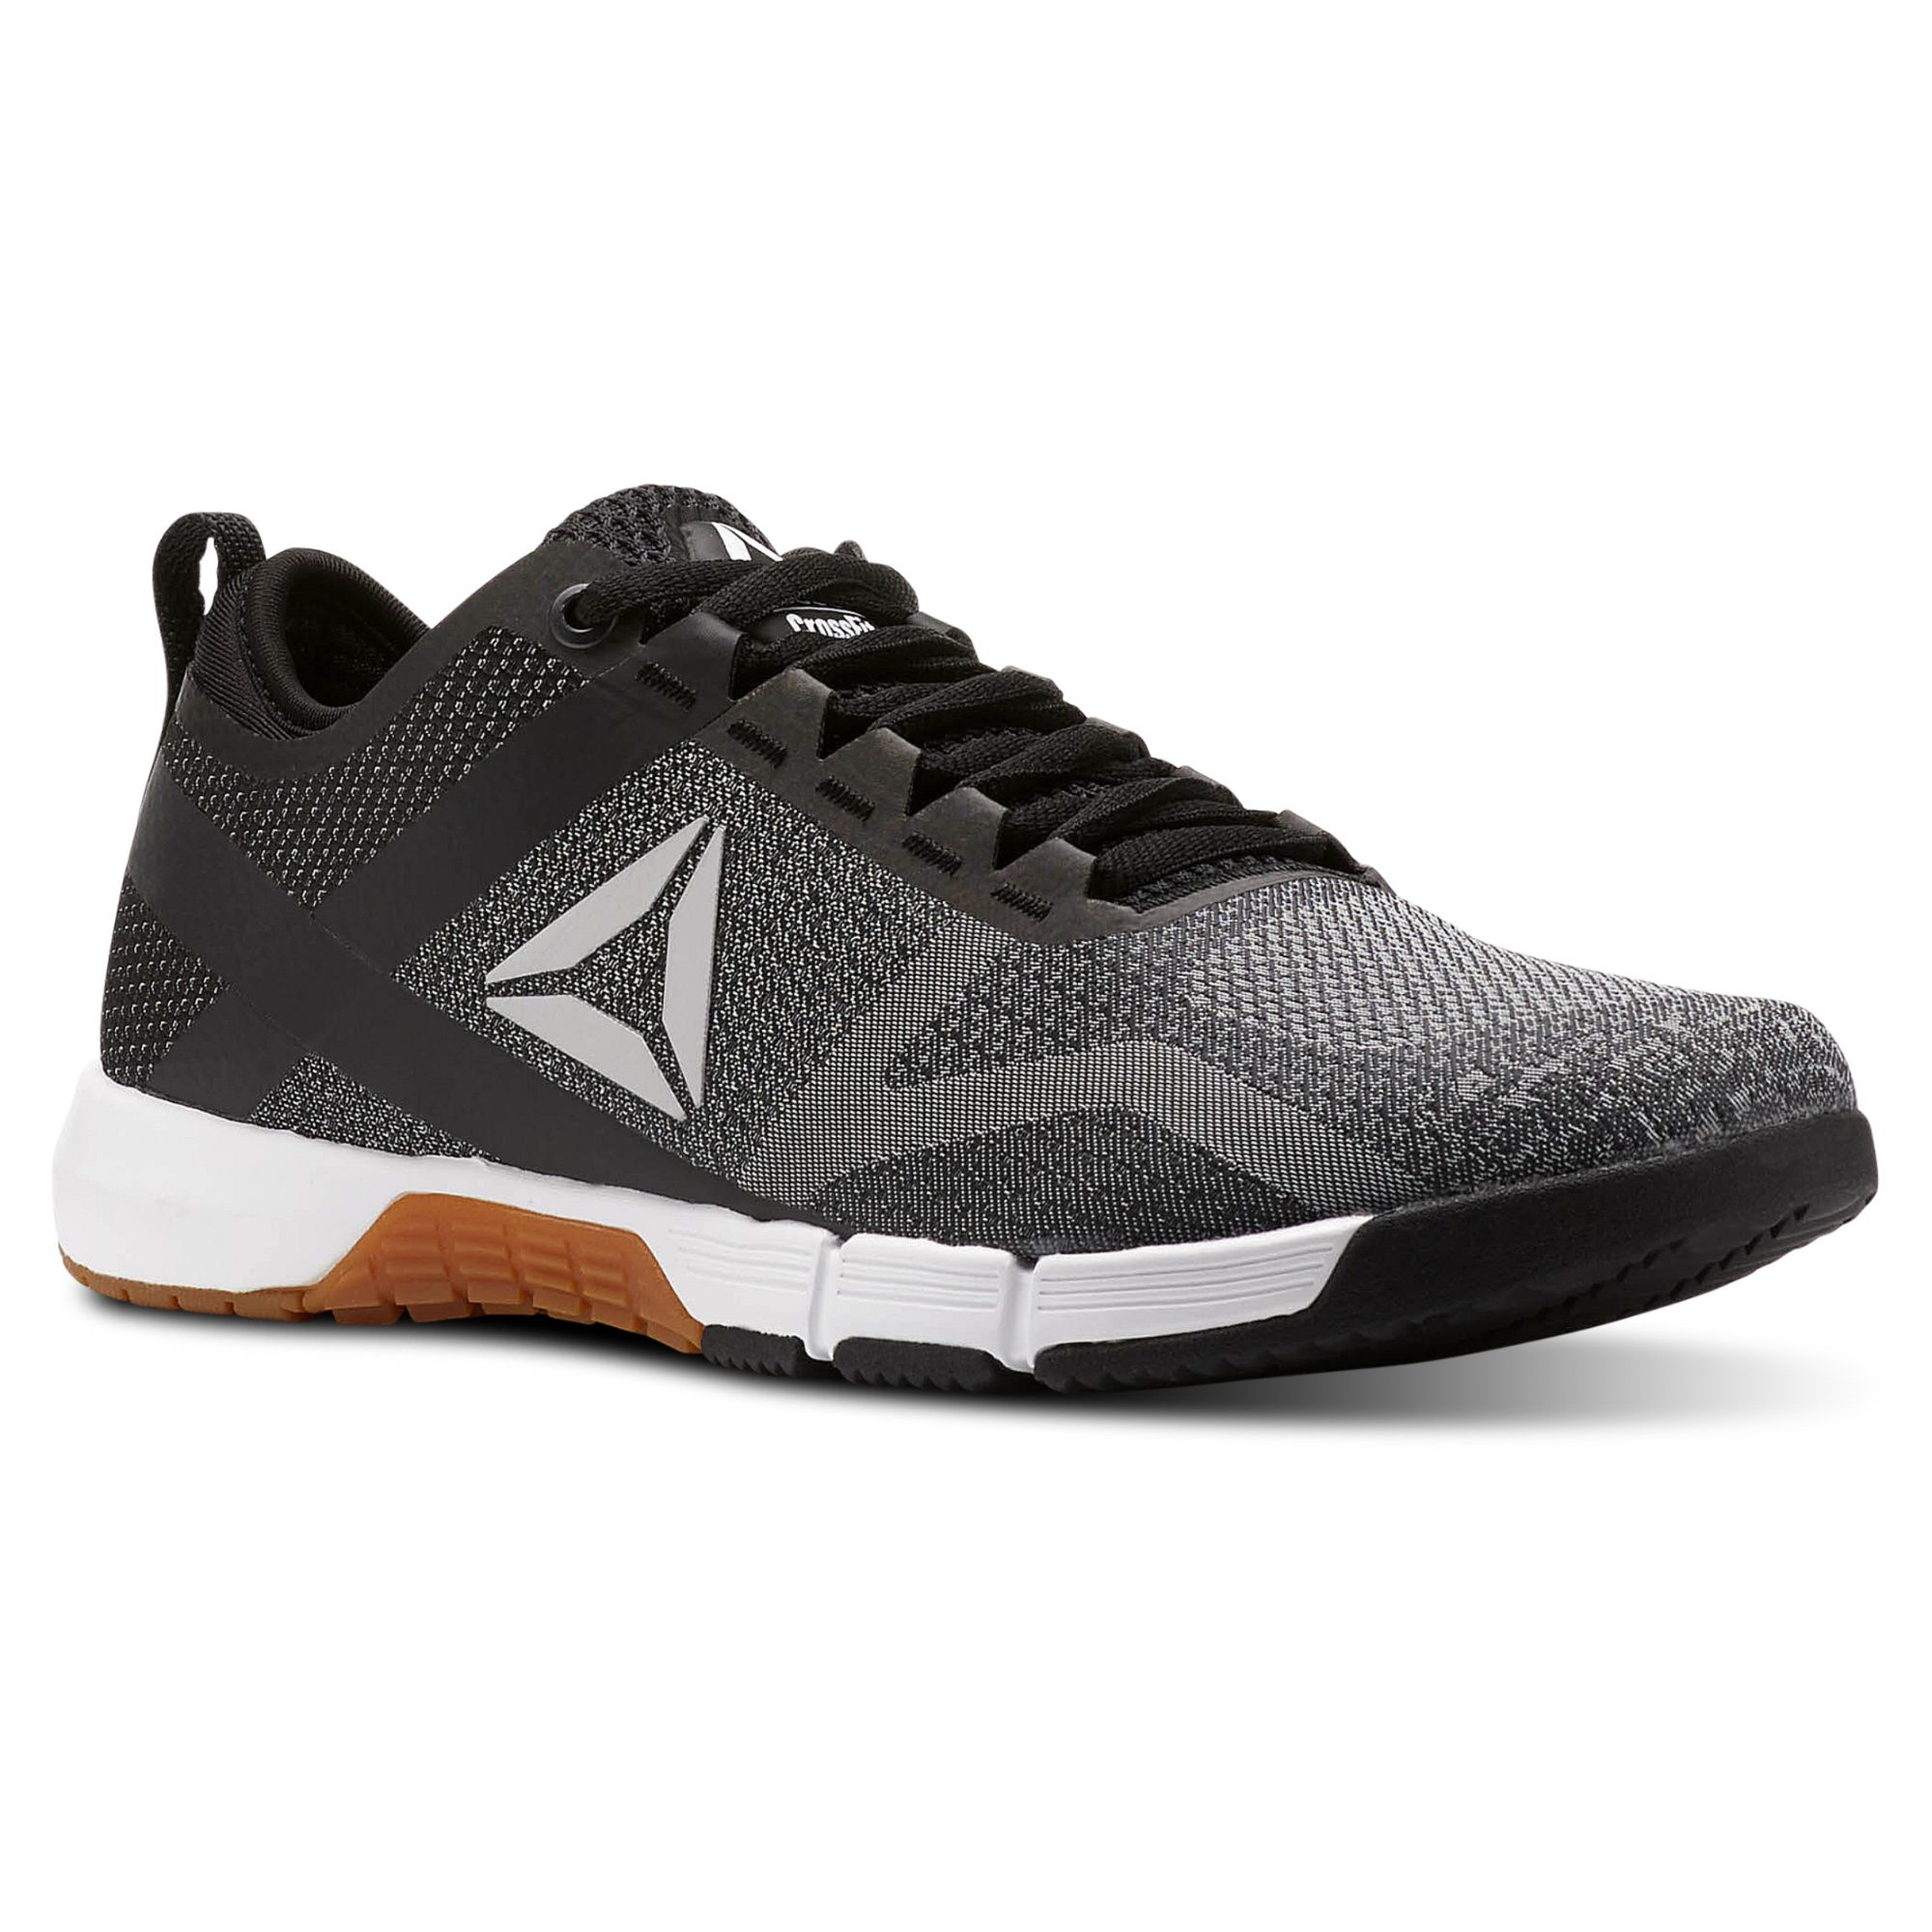 cb8549893ce5 Purchase Reebok CrossFit Grace - Grey online from the Official CrossFit  Store. Browse colors options and read the latest product reviews. Shop  Today!